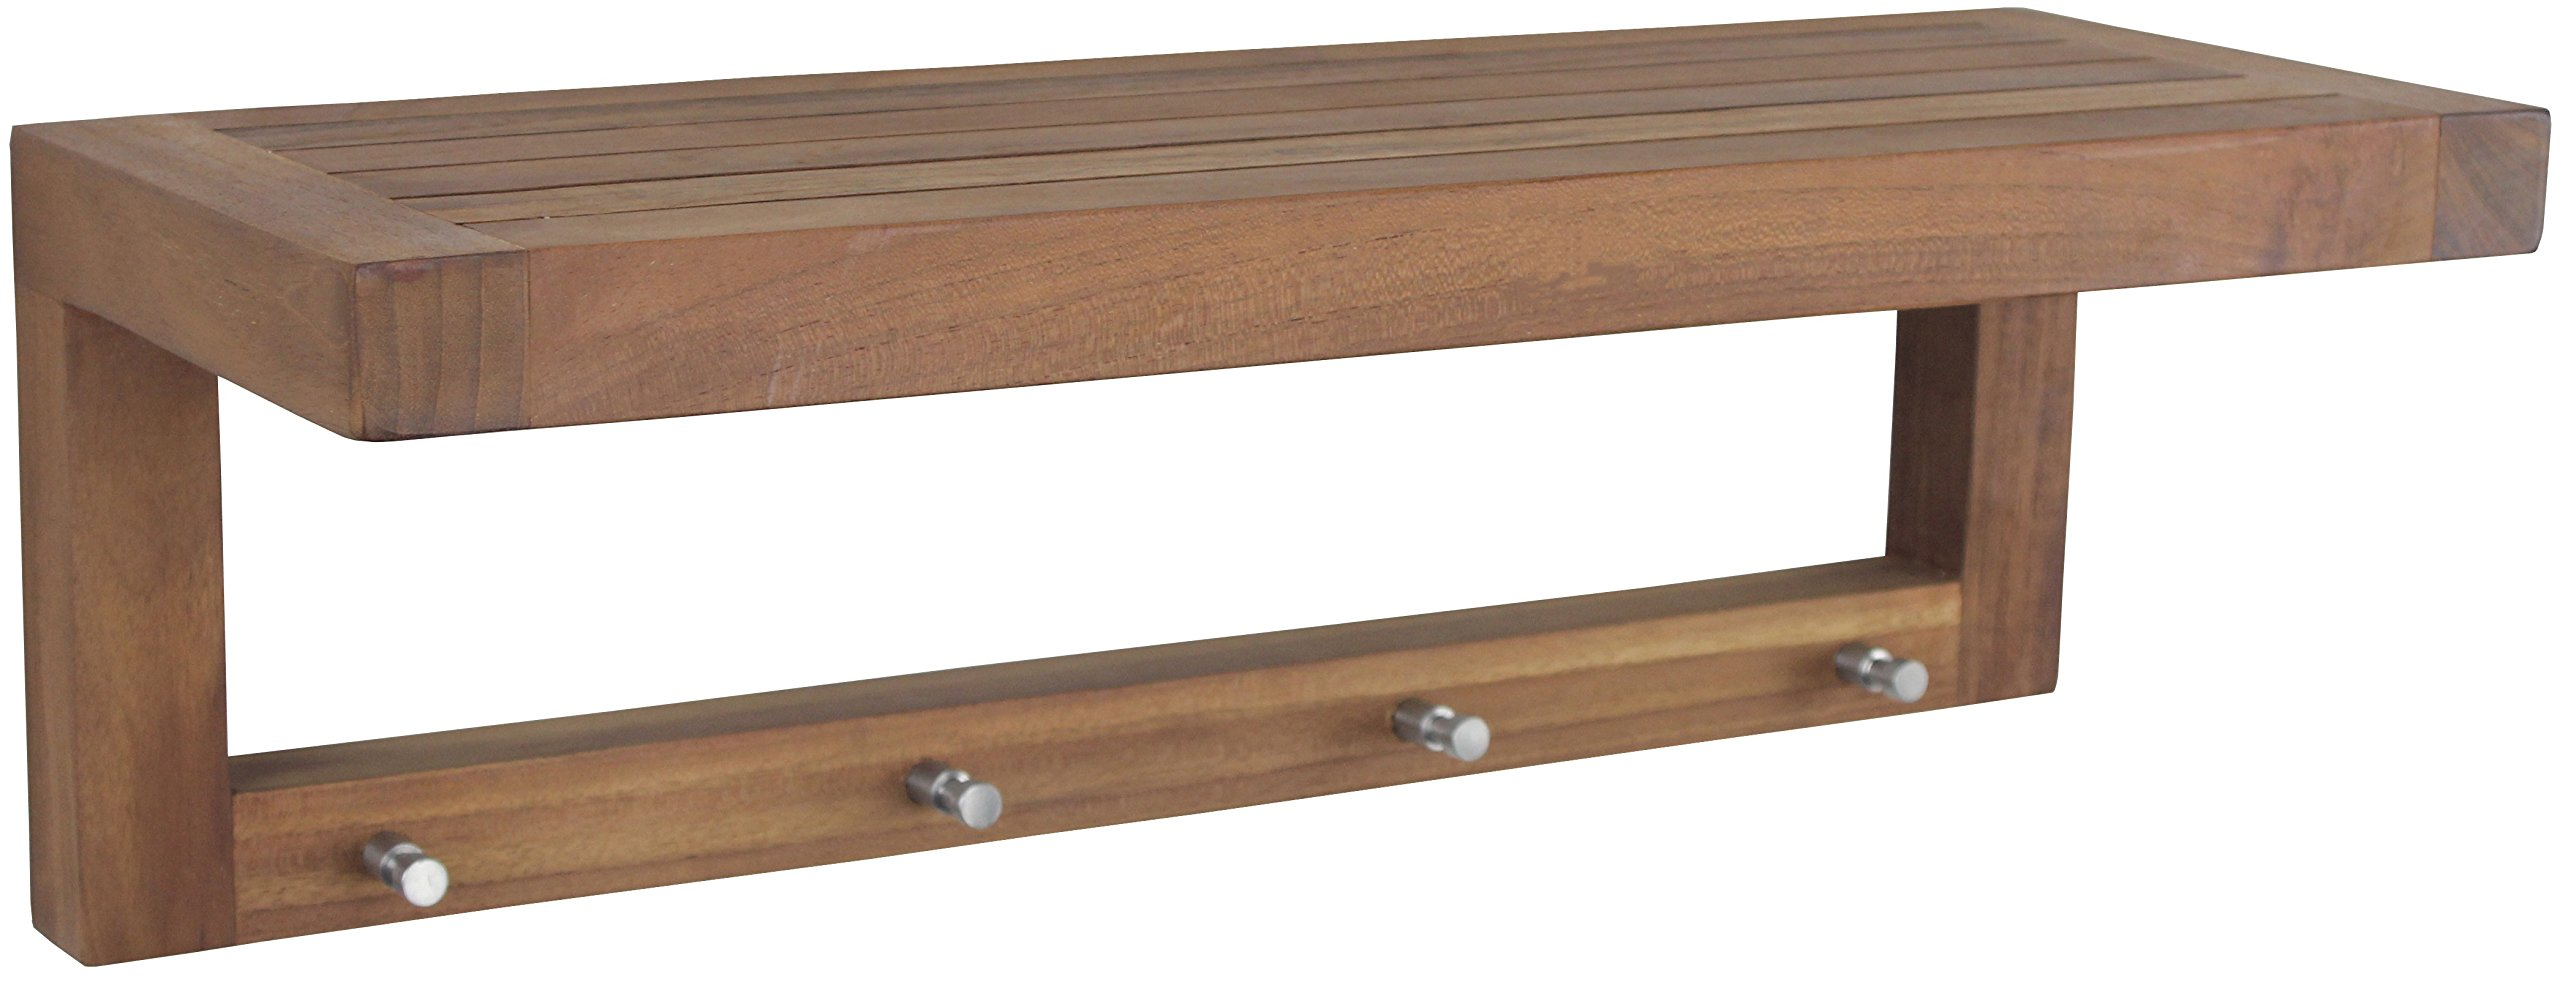 The Original Spa 30 Teak Shower Bench With